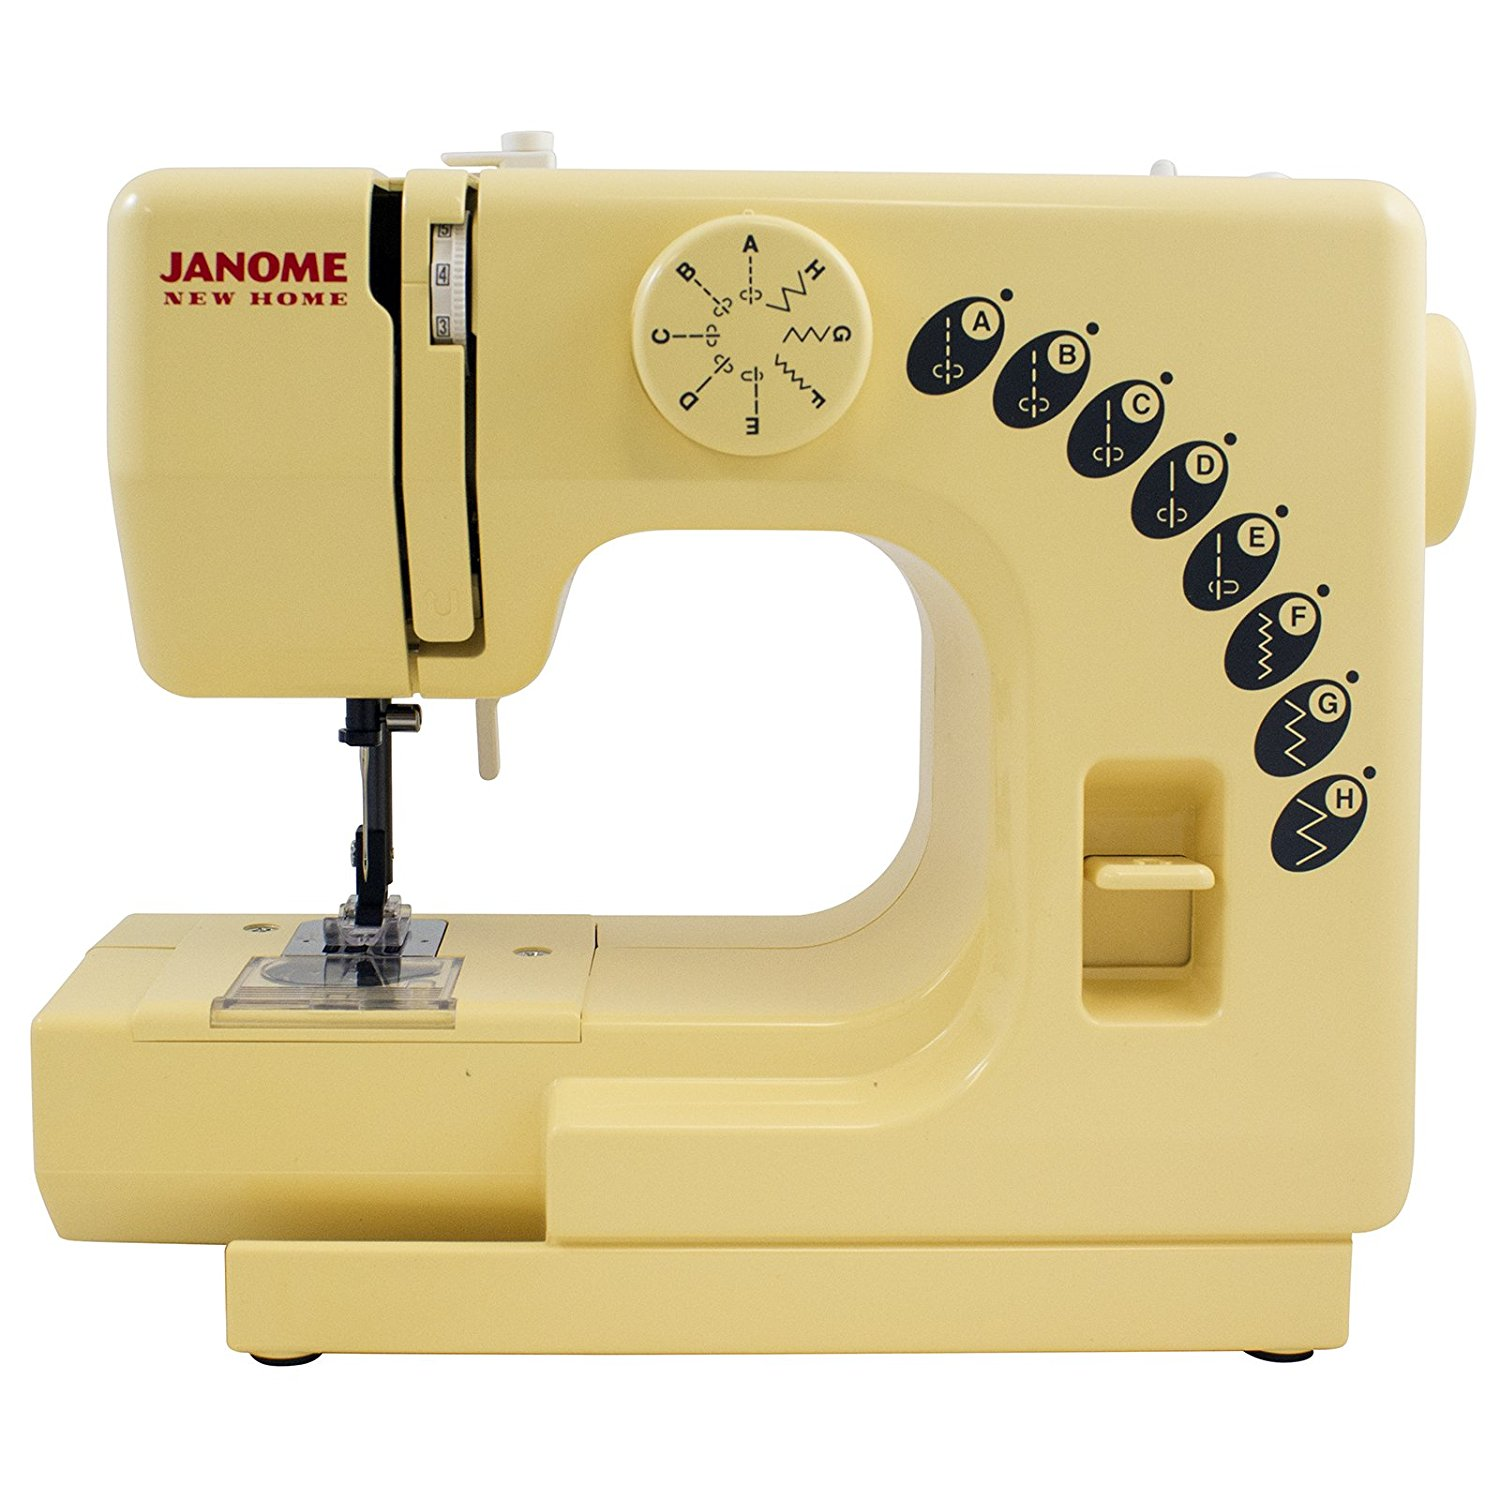 Janome SewMini Sewing Machine